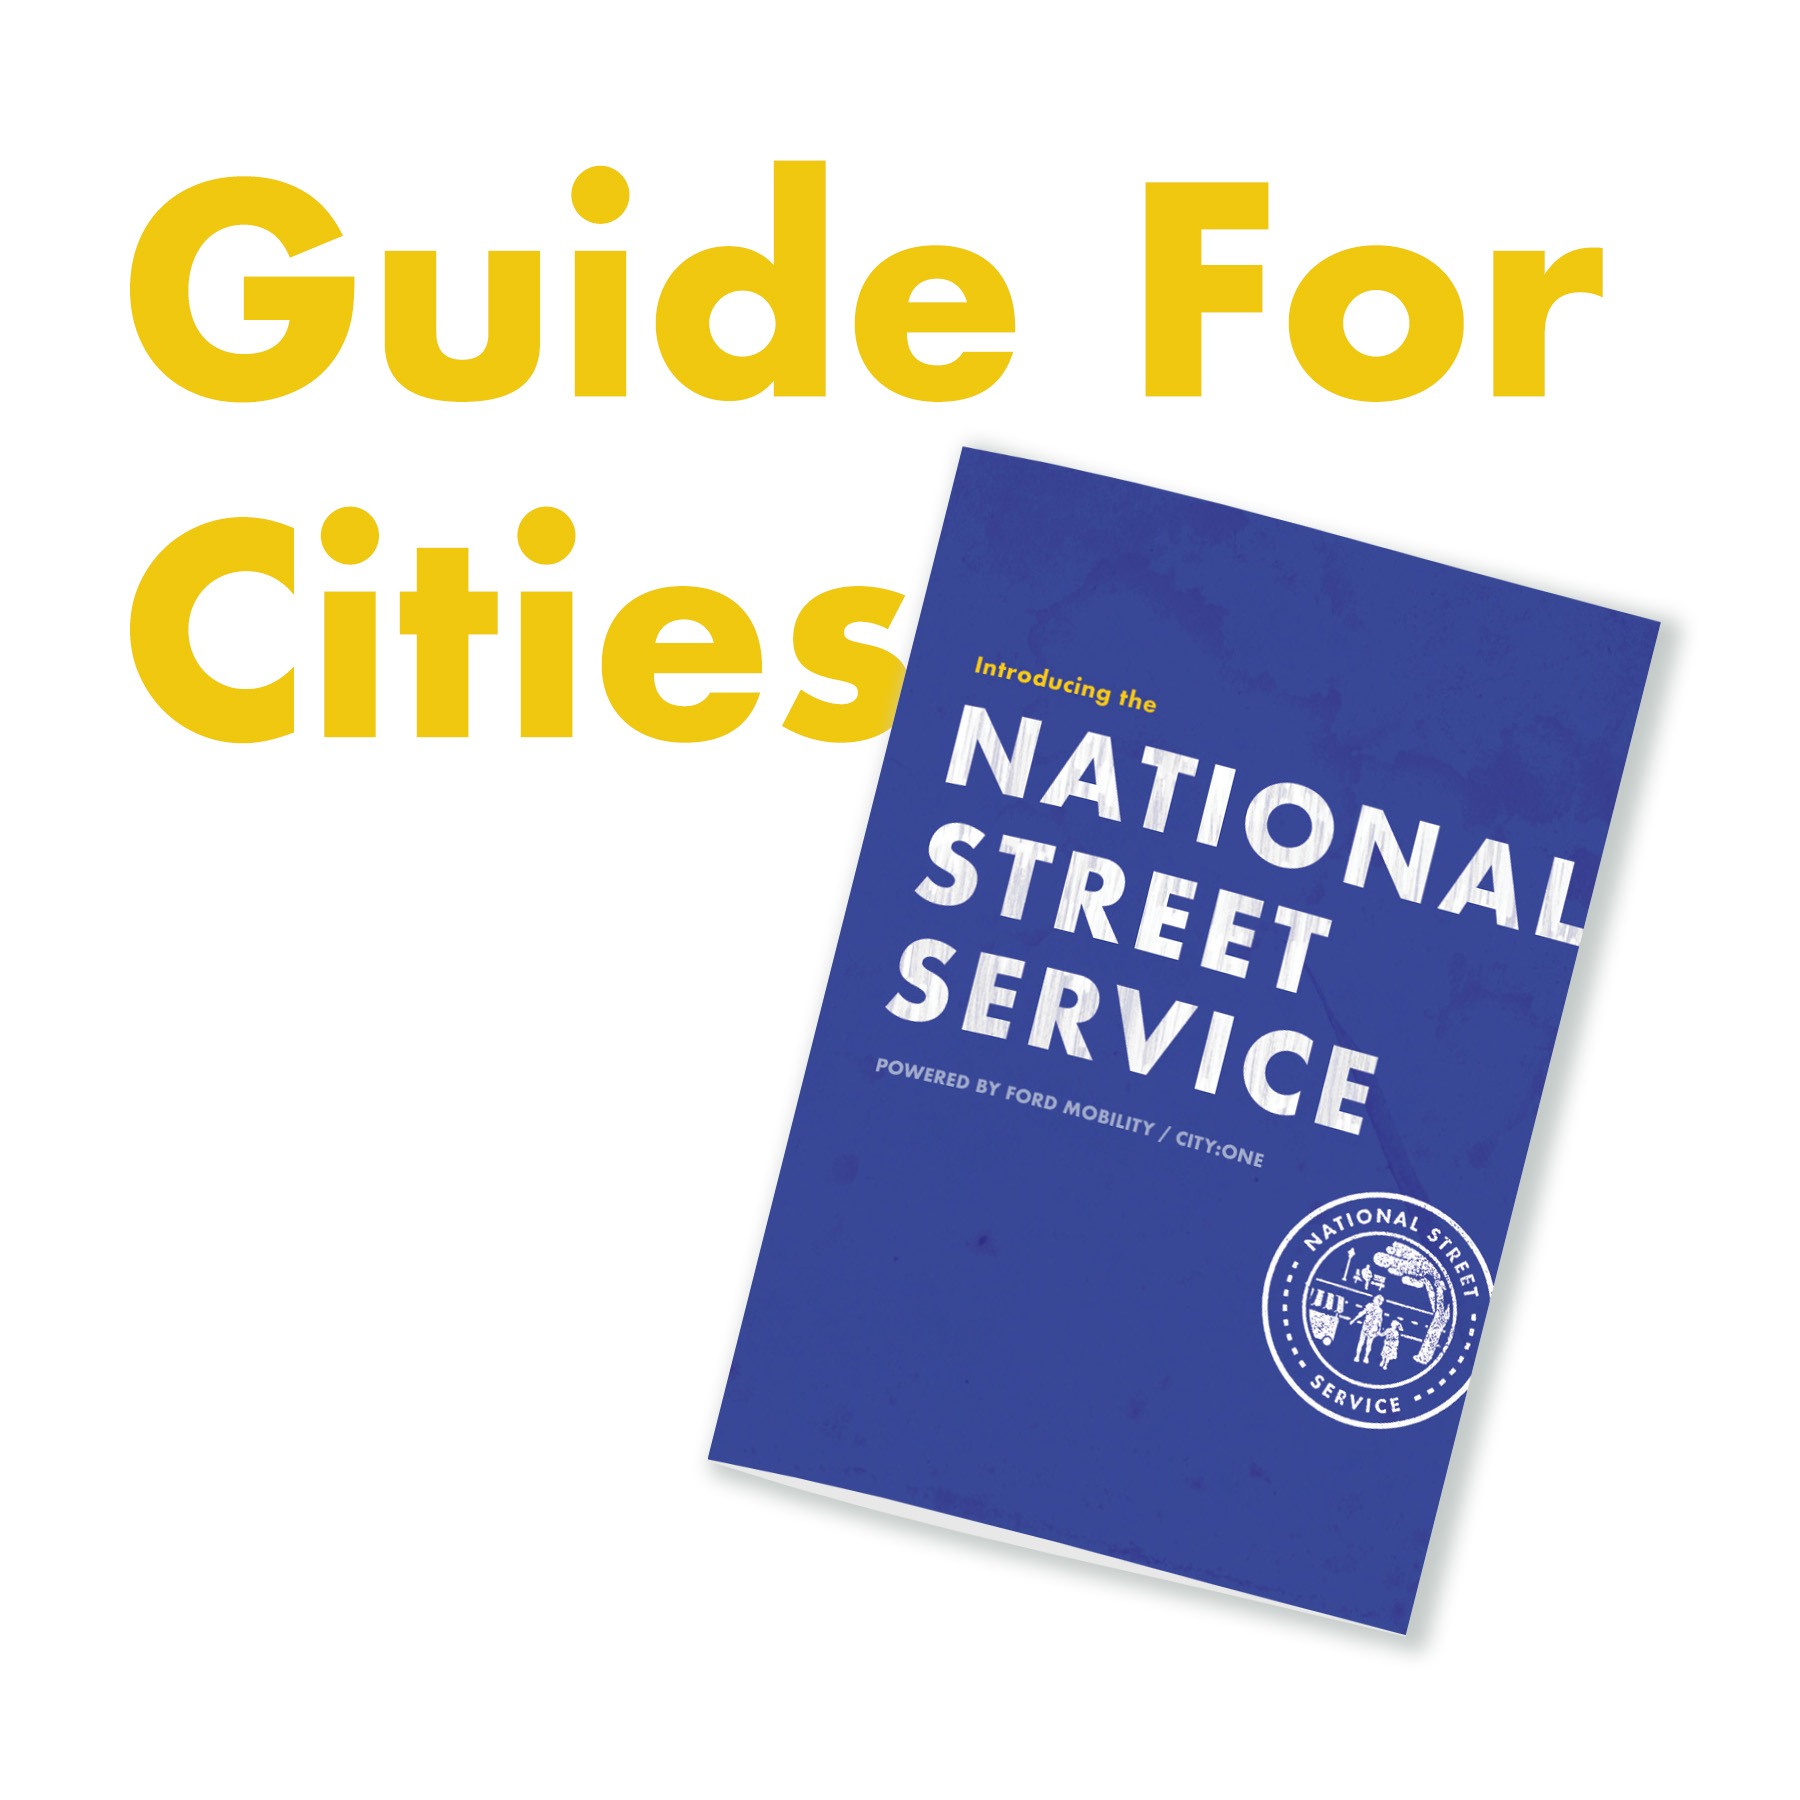 For more information on how the National Street Service can help your city, explore our  Guide for Cities